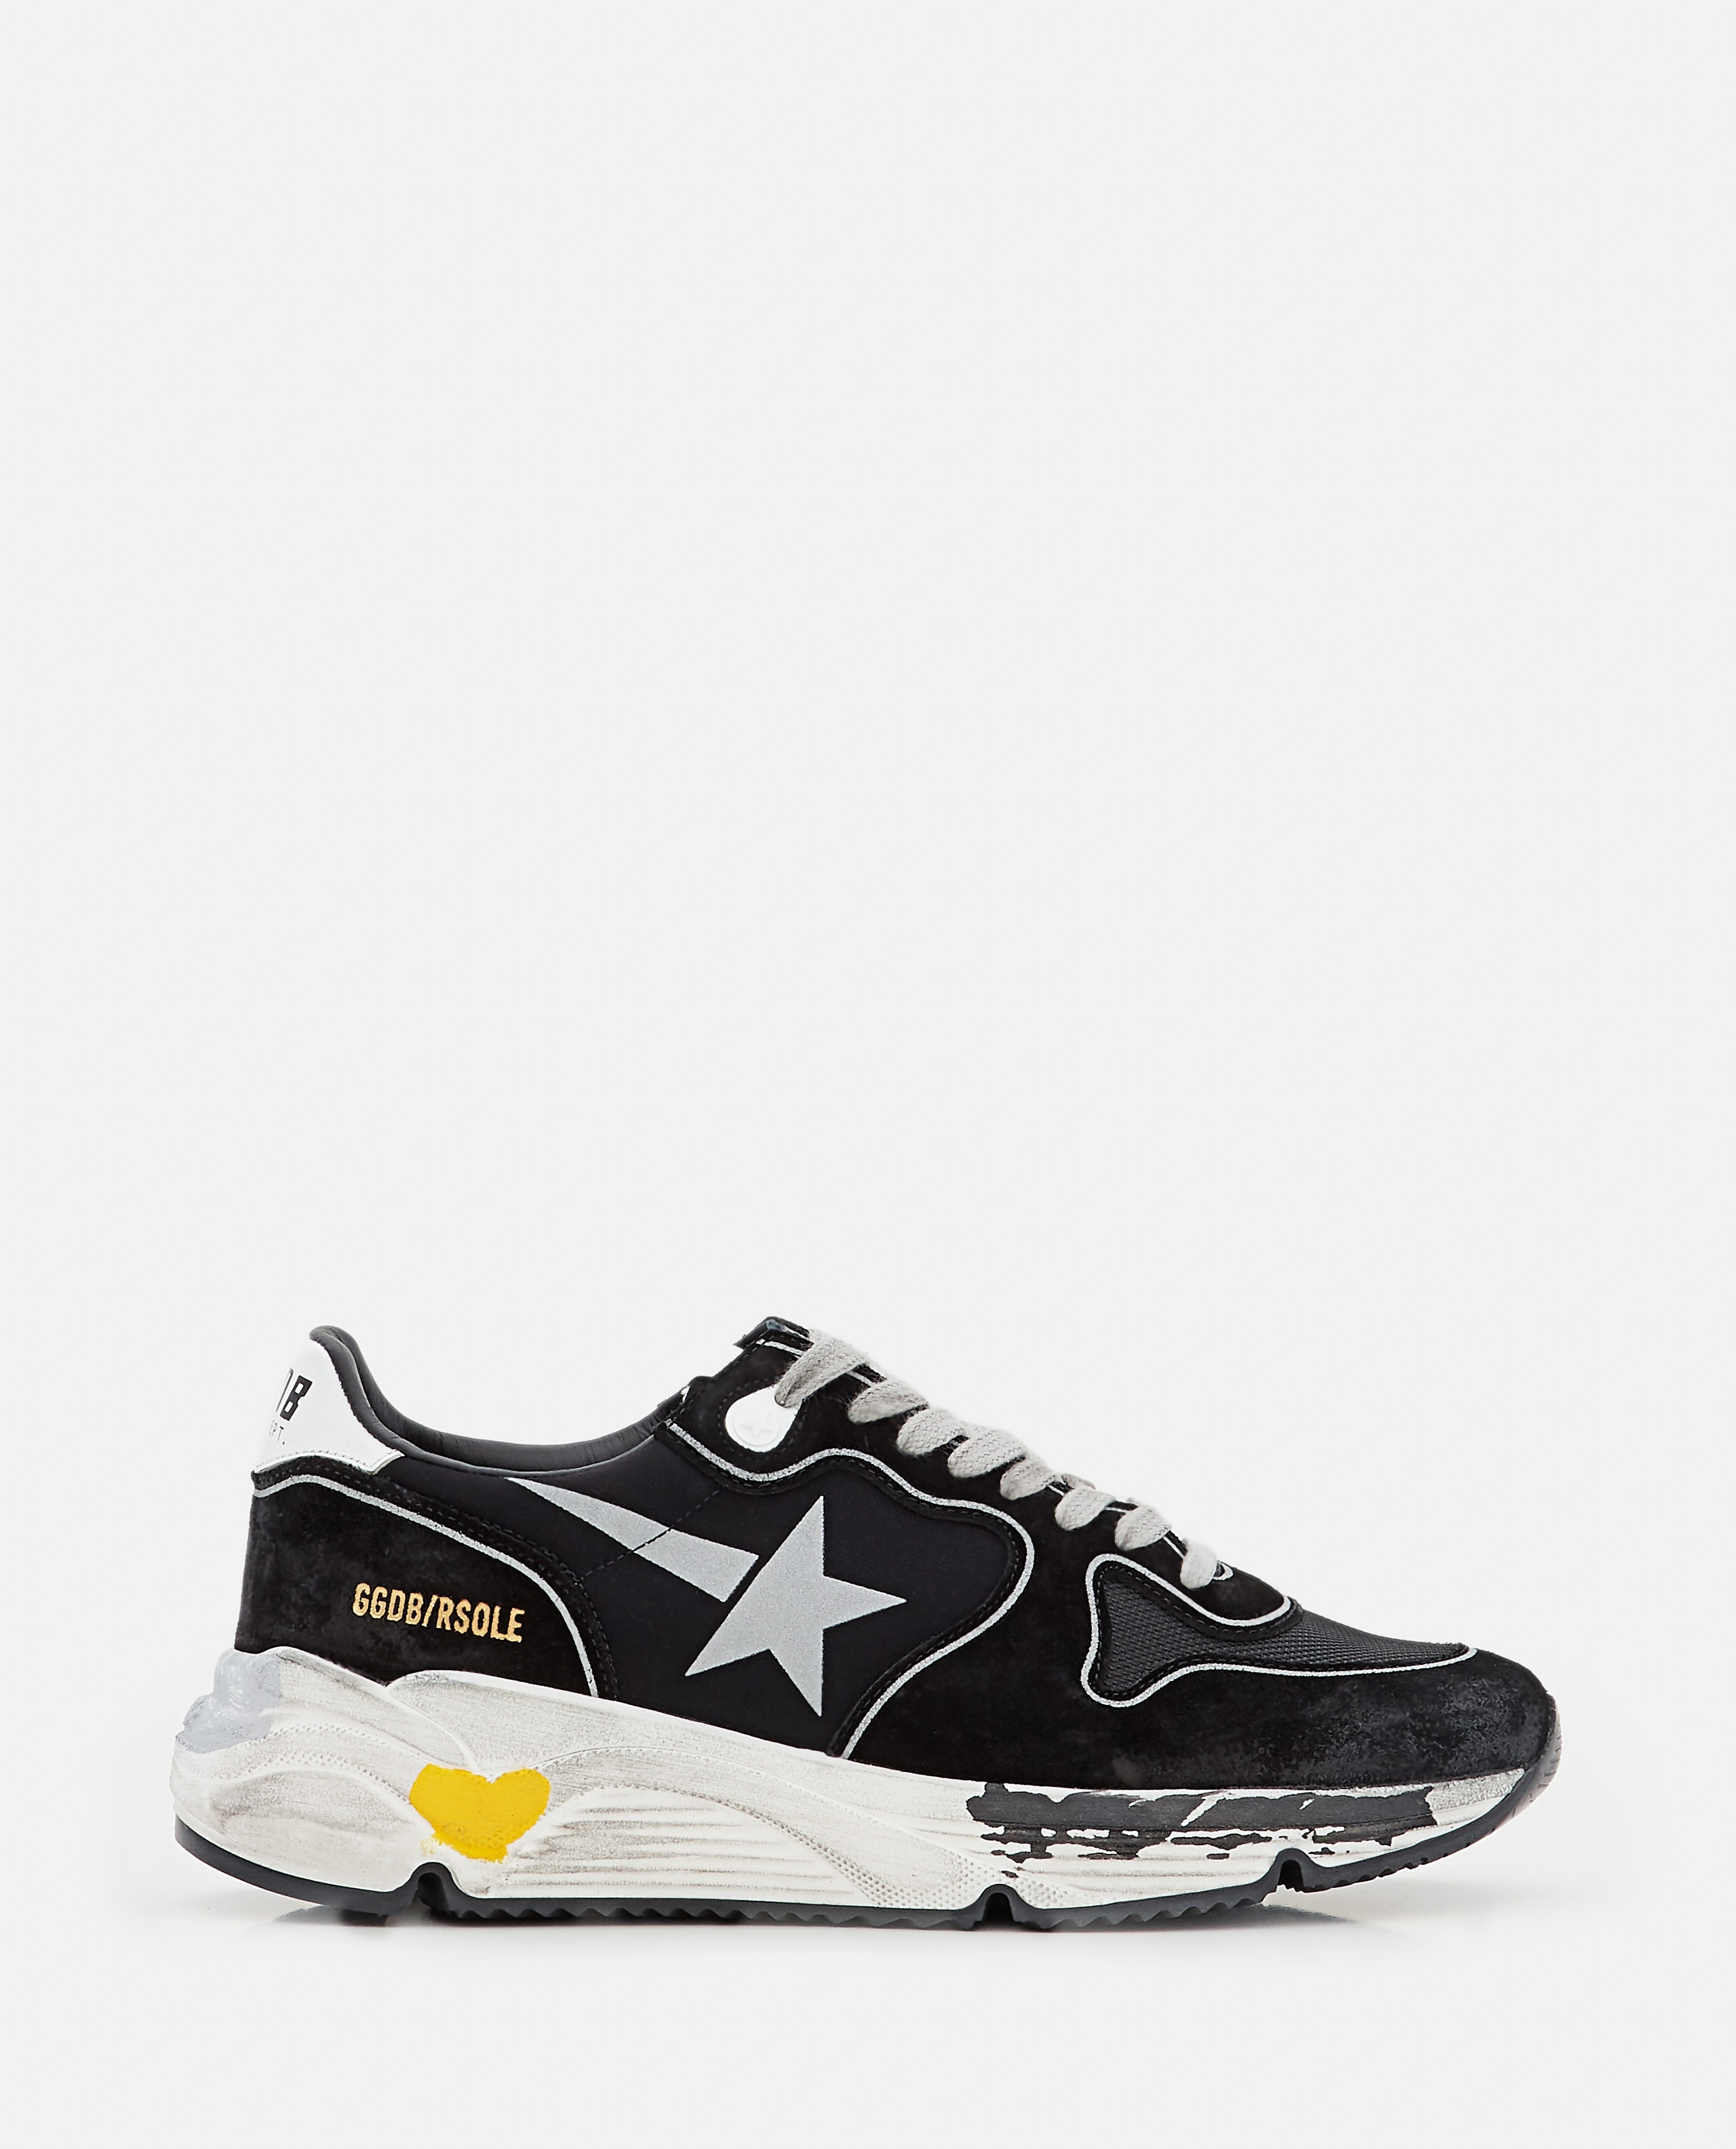 RUNNING SOLE LYCRA AND LEATHER SNEAKERS Women Golden Goose 000322020047097 1